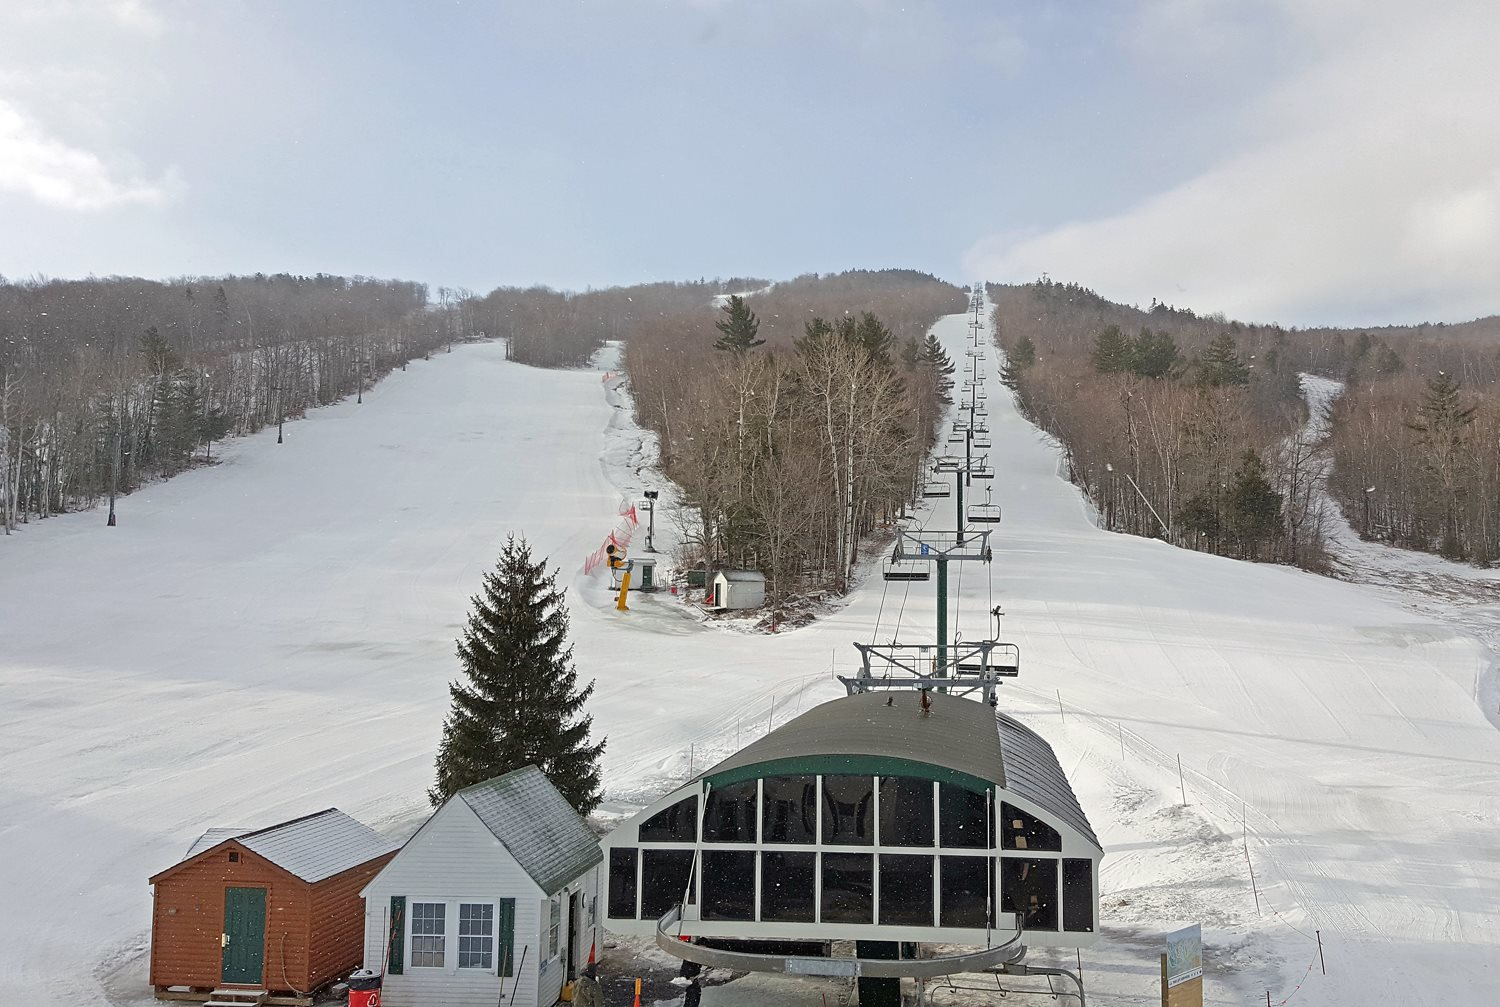 new hampshire ski area tries new strategy: cheap passes, free